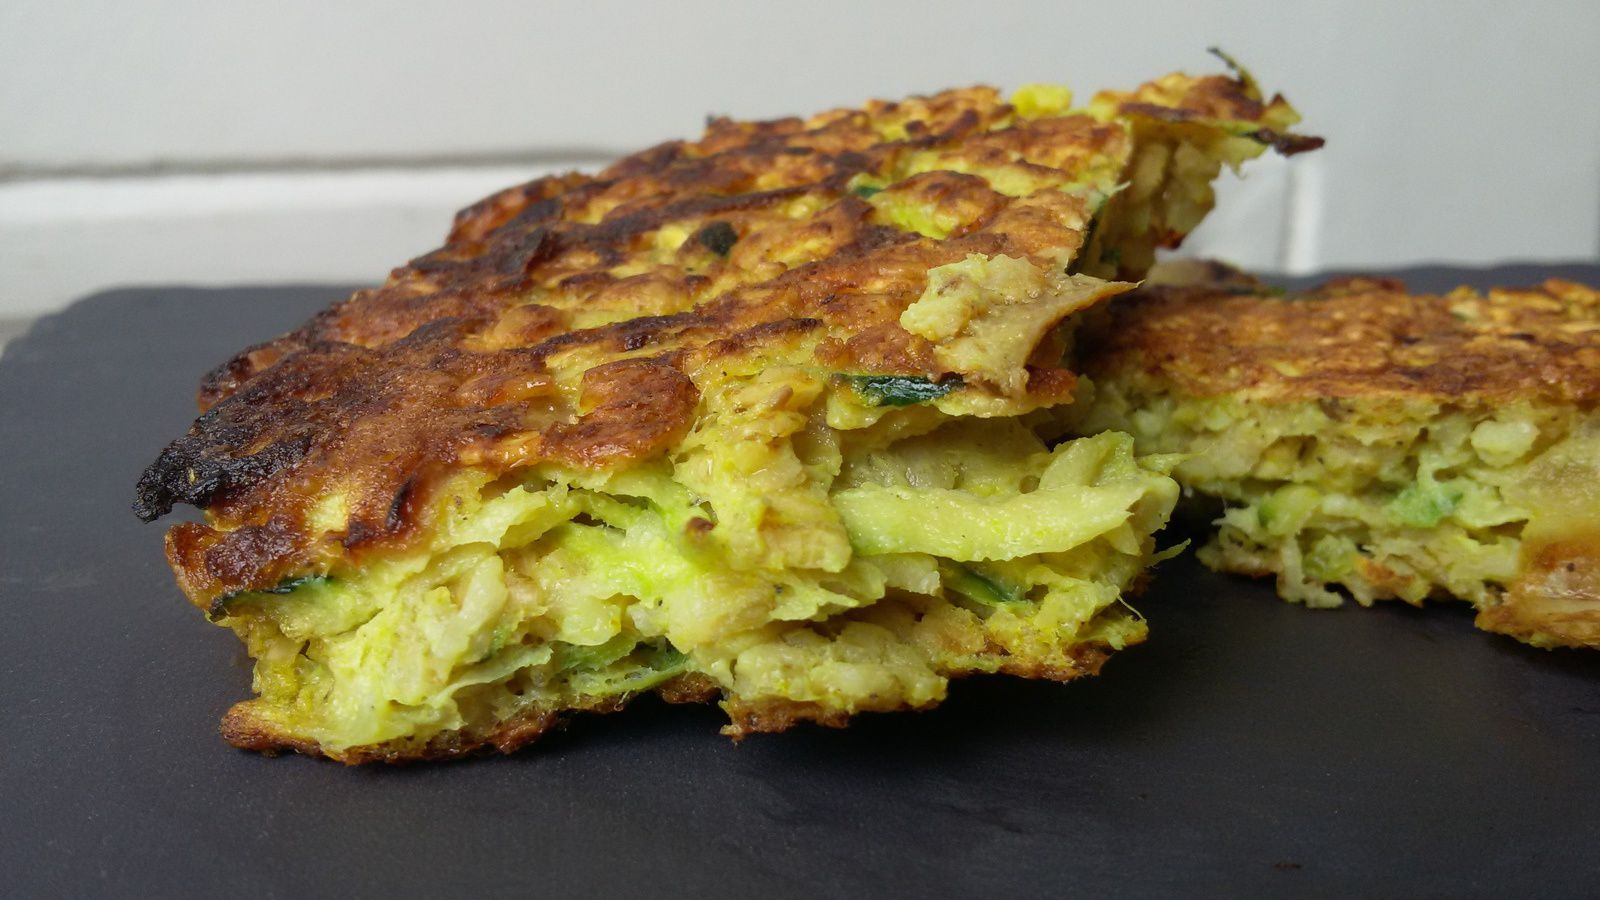 Galettes courgettes oignon / curry / flocons d'avoine